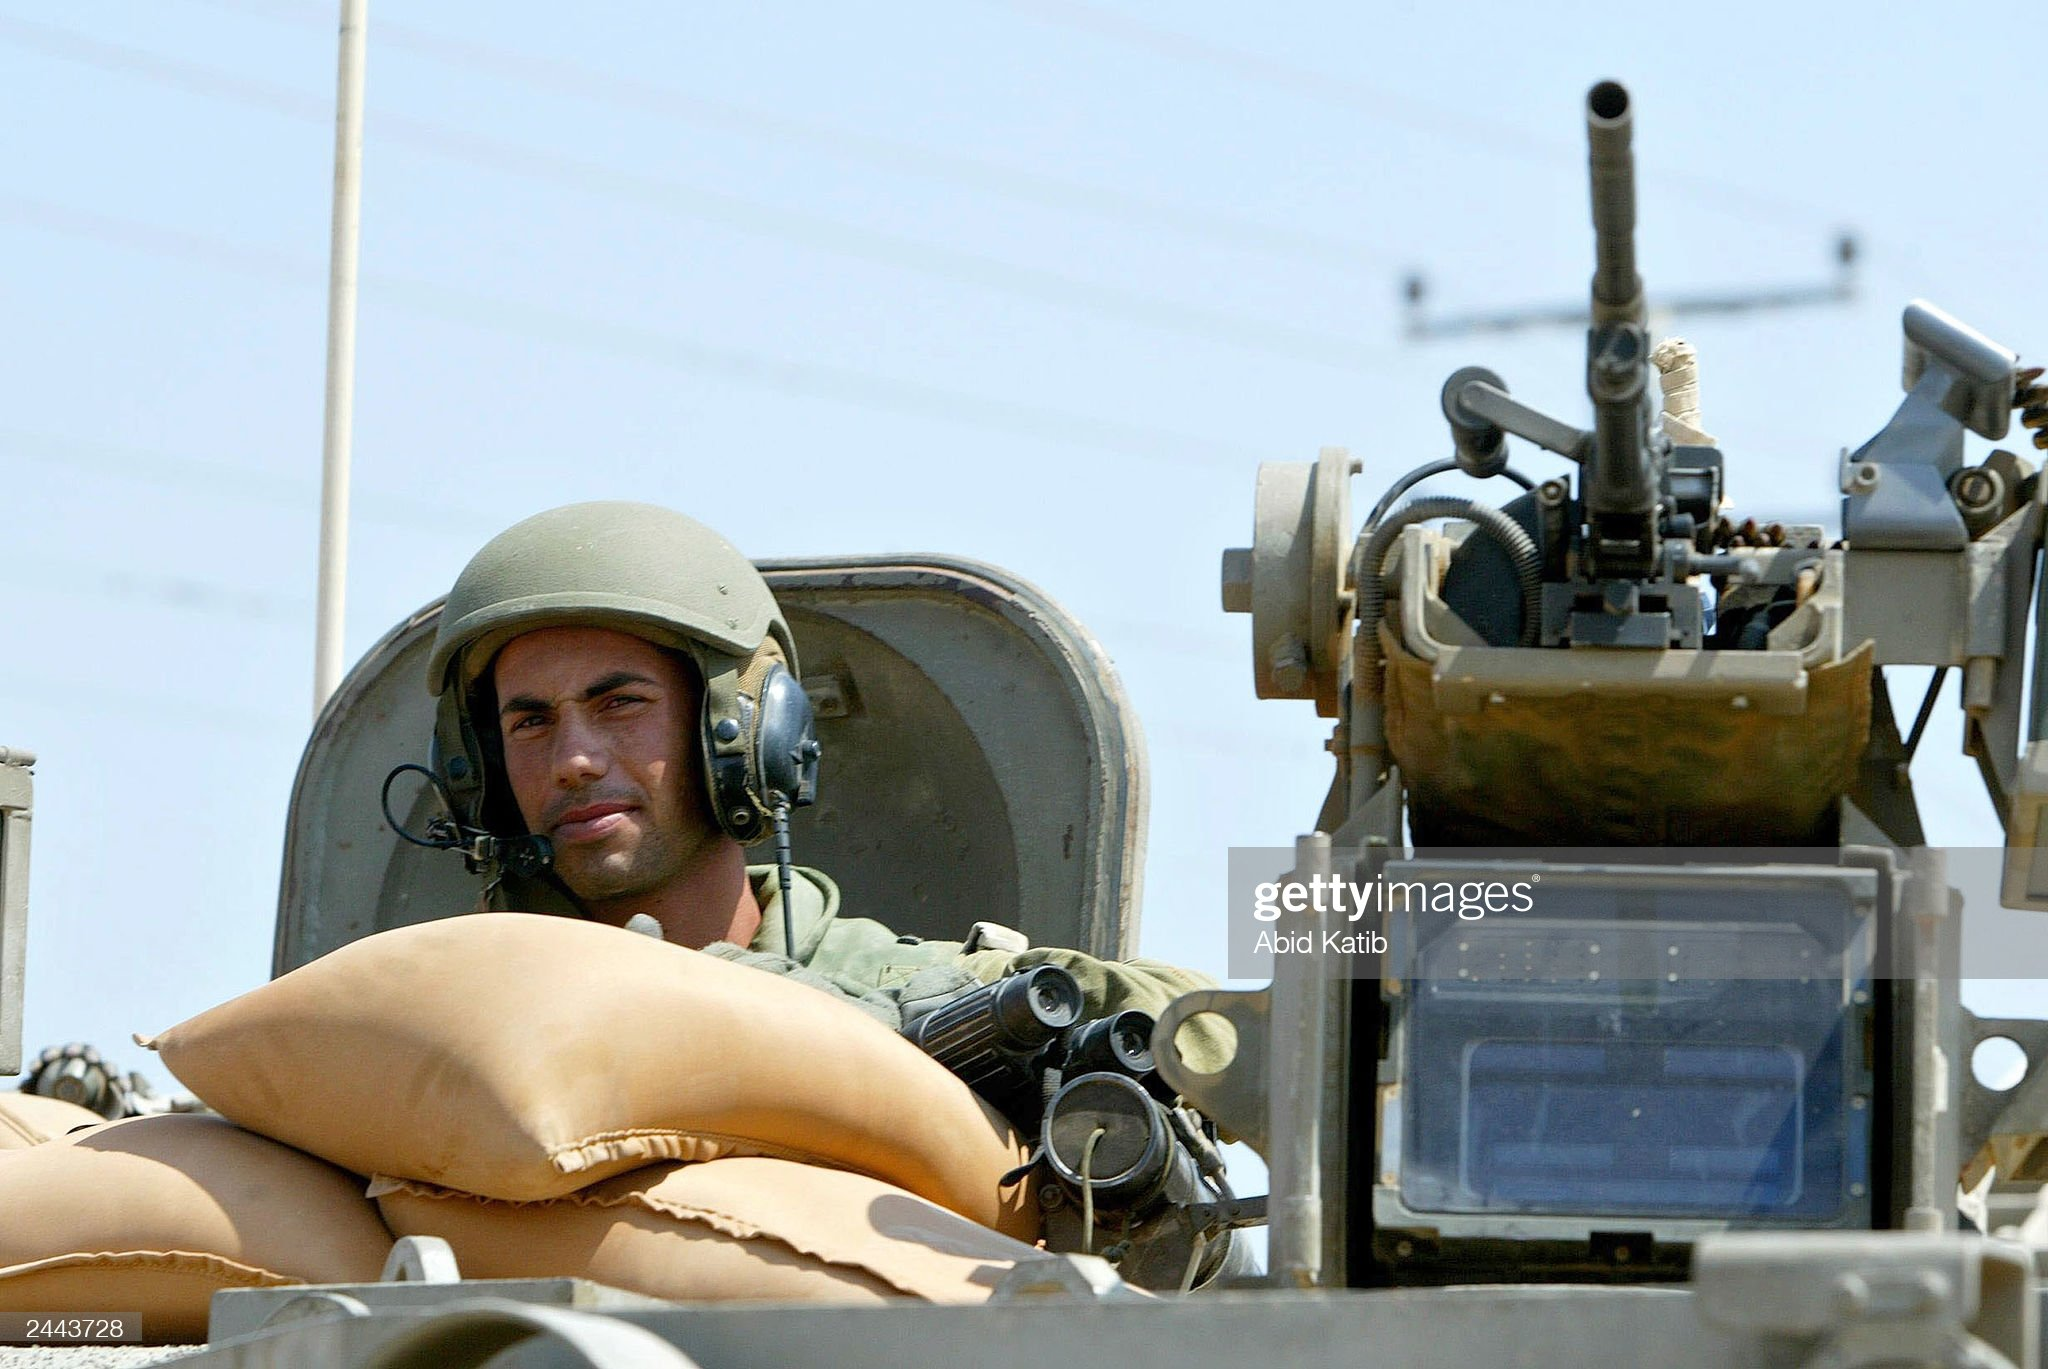 https://media.gettyimages.com/photos/an-israeli-soldier-sits-in-a-tank-while-its-entering-the-erez-29-picture-id2443728?s=2048x2048